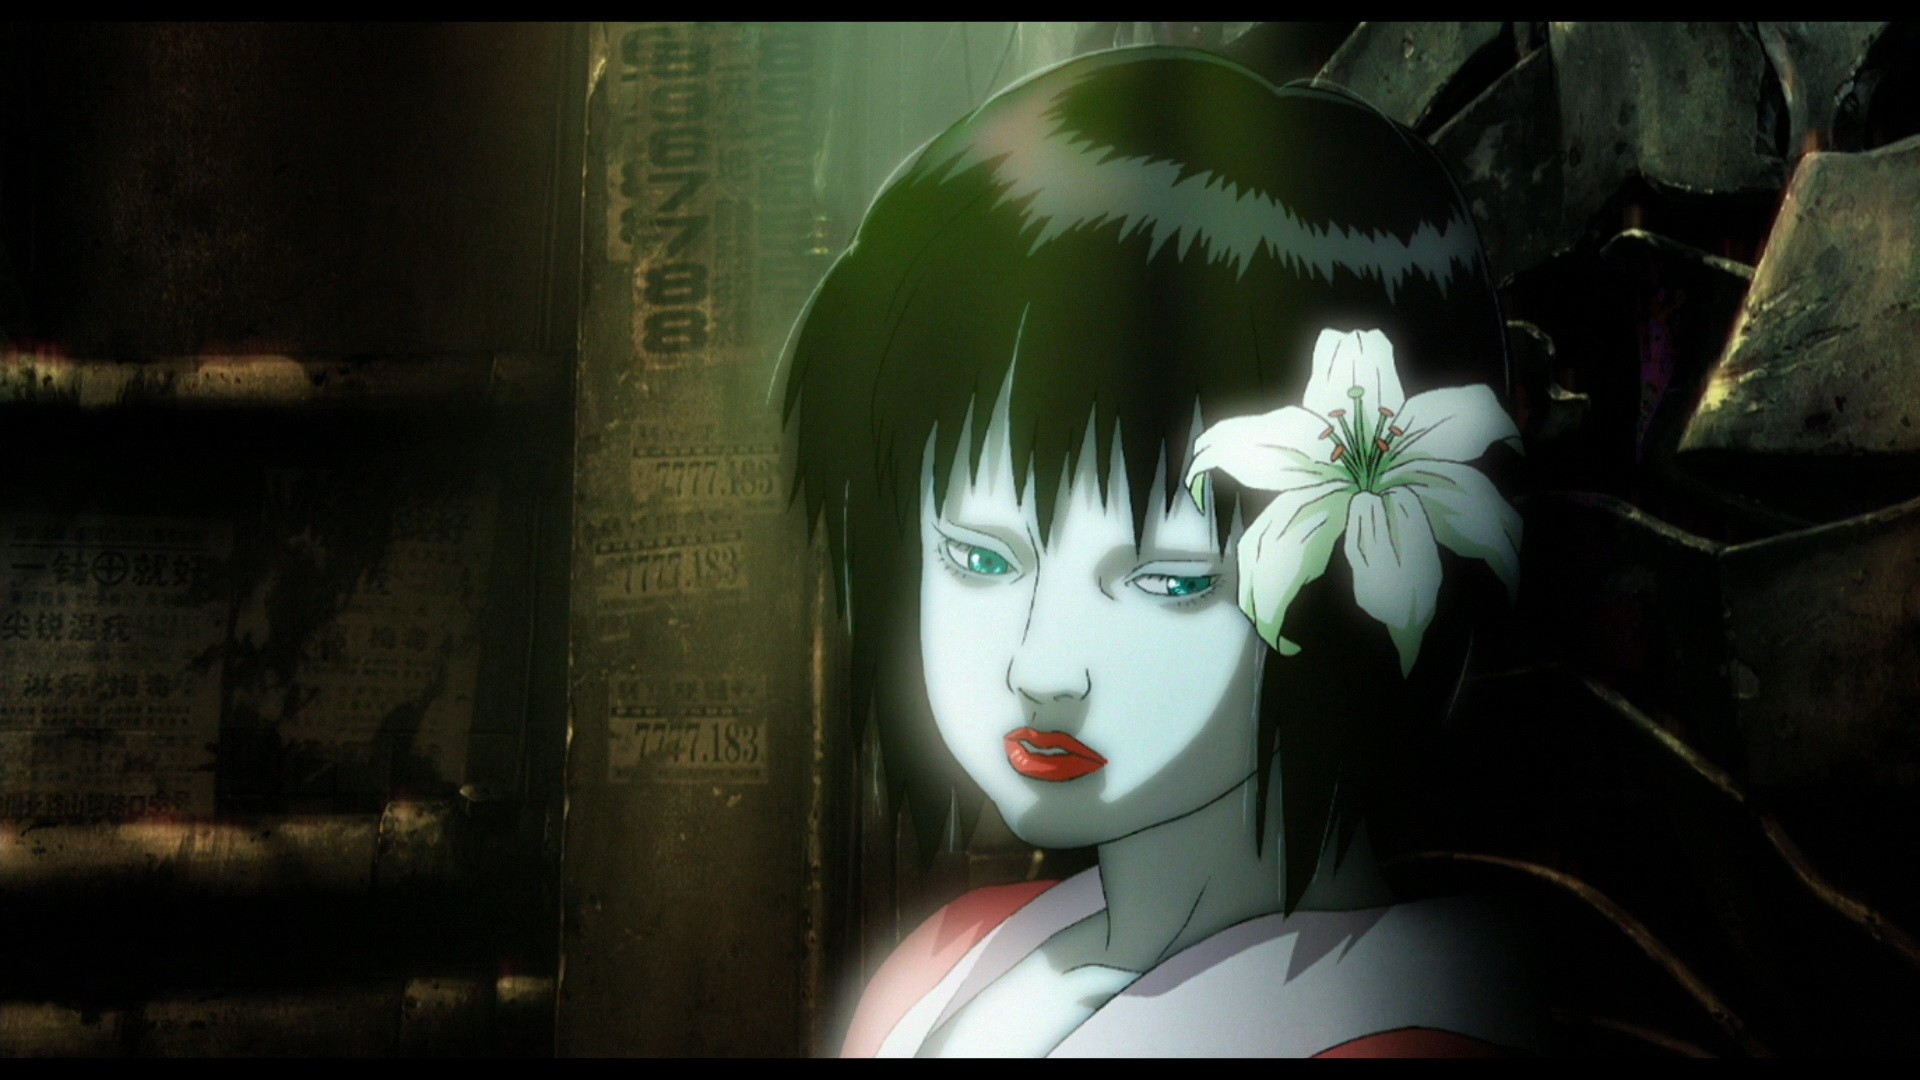 Gone Ghosts Anime Wallpapers High Quality Download Free